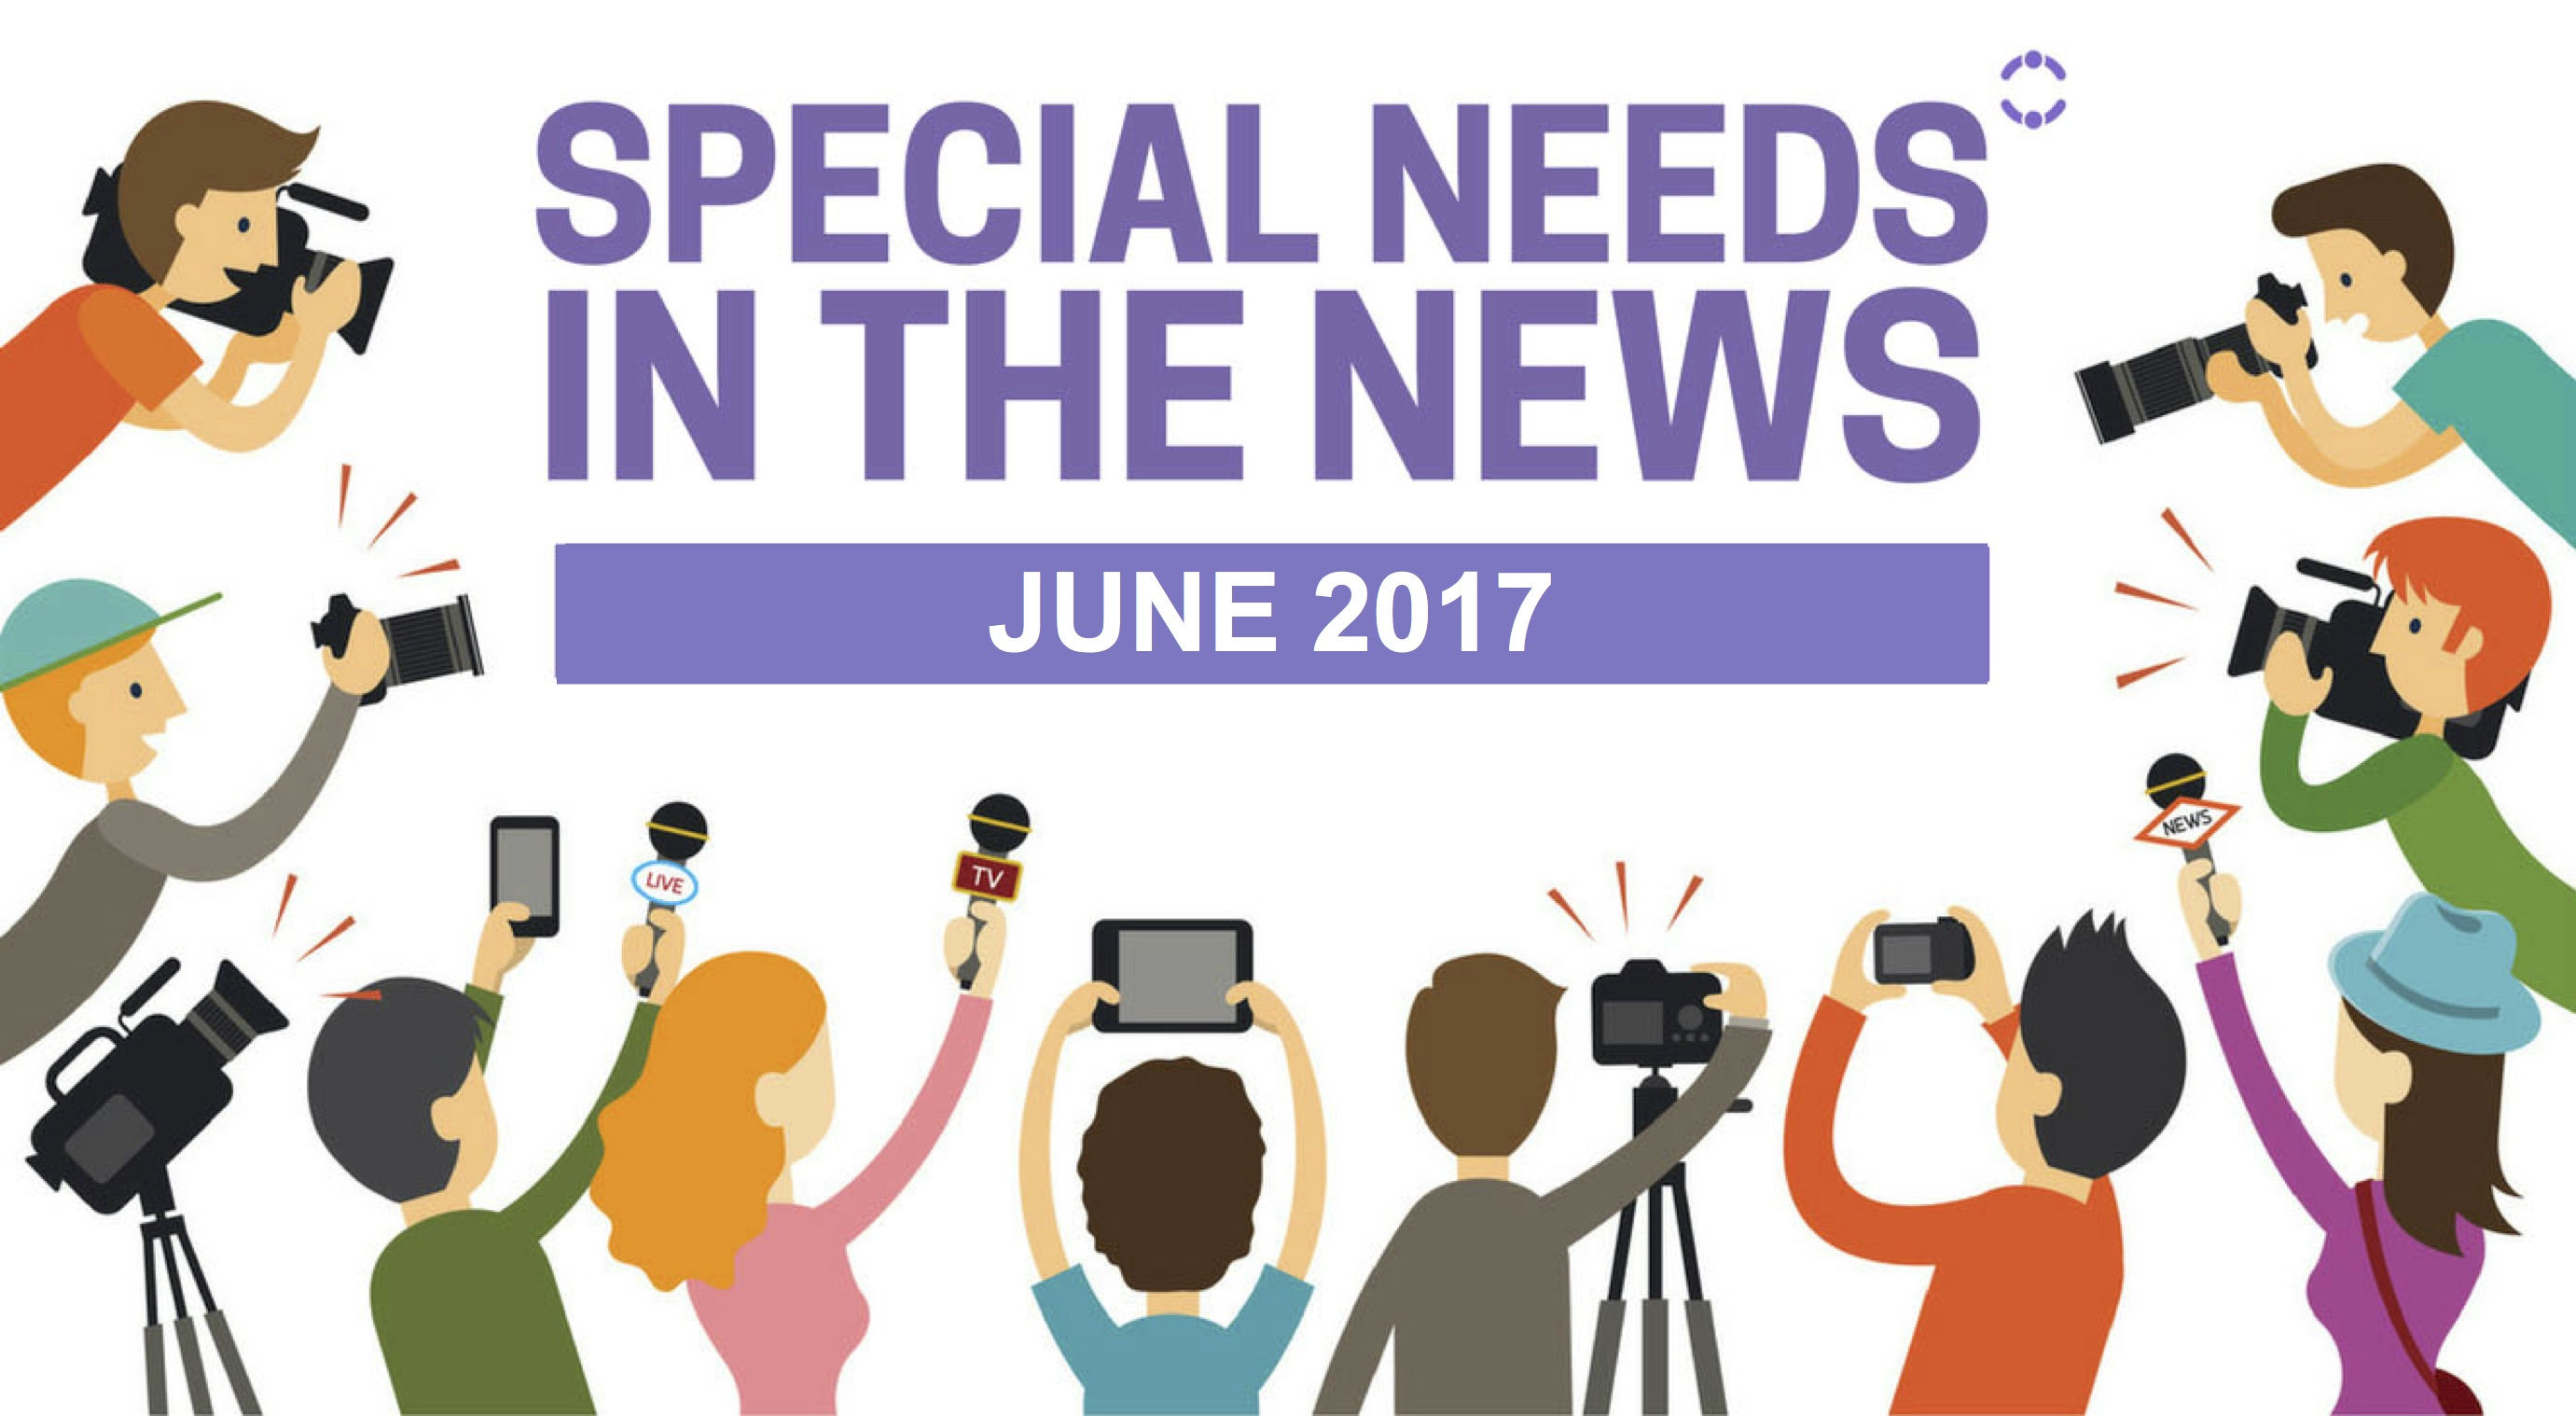 June Special Needs in the News